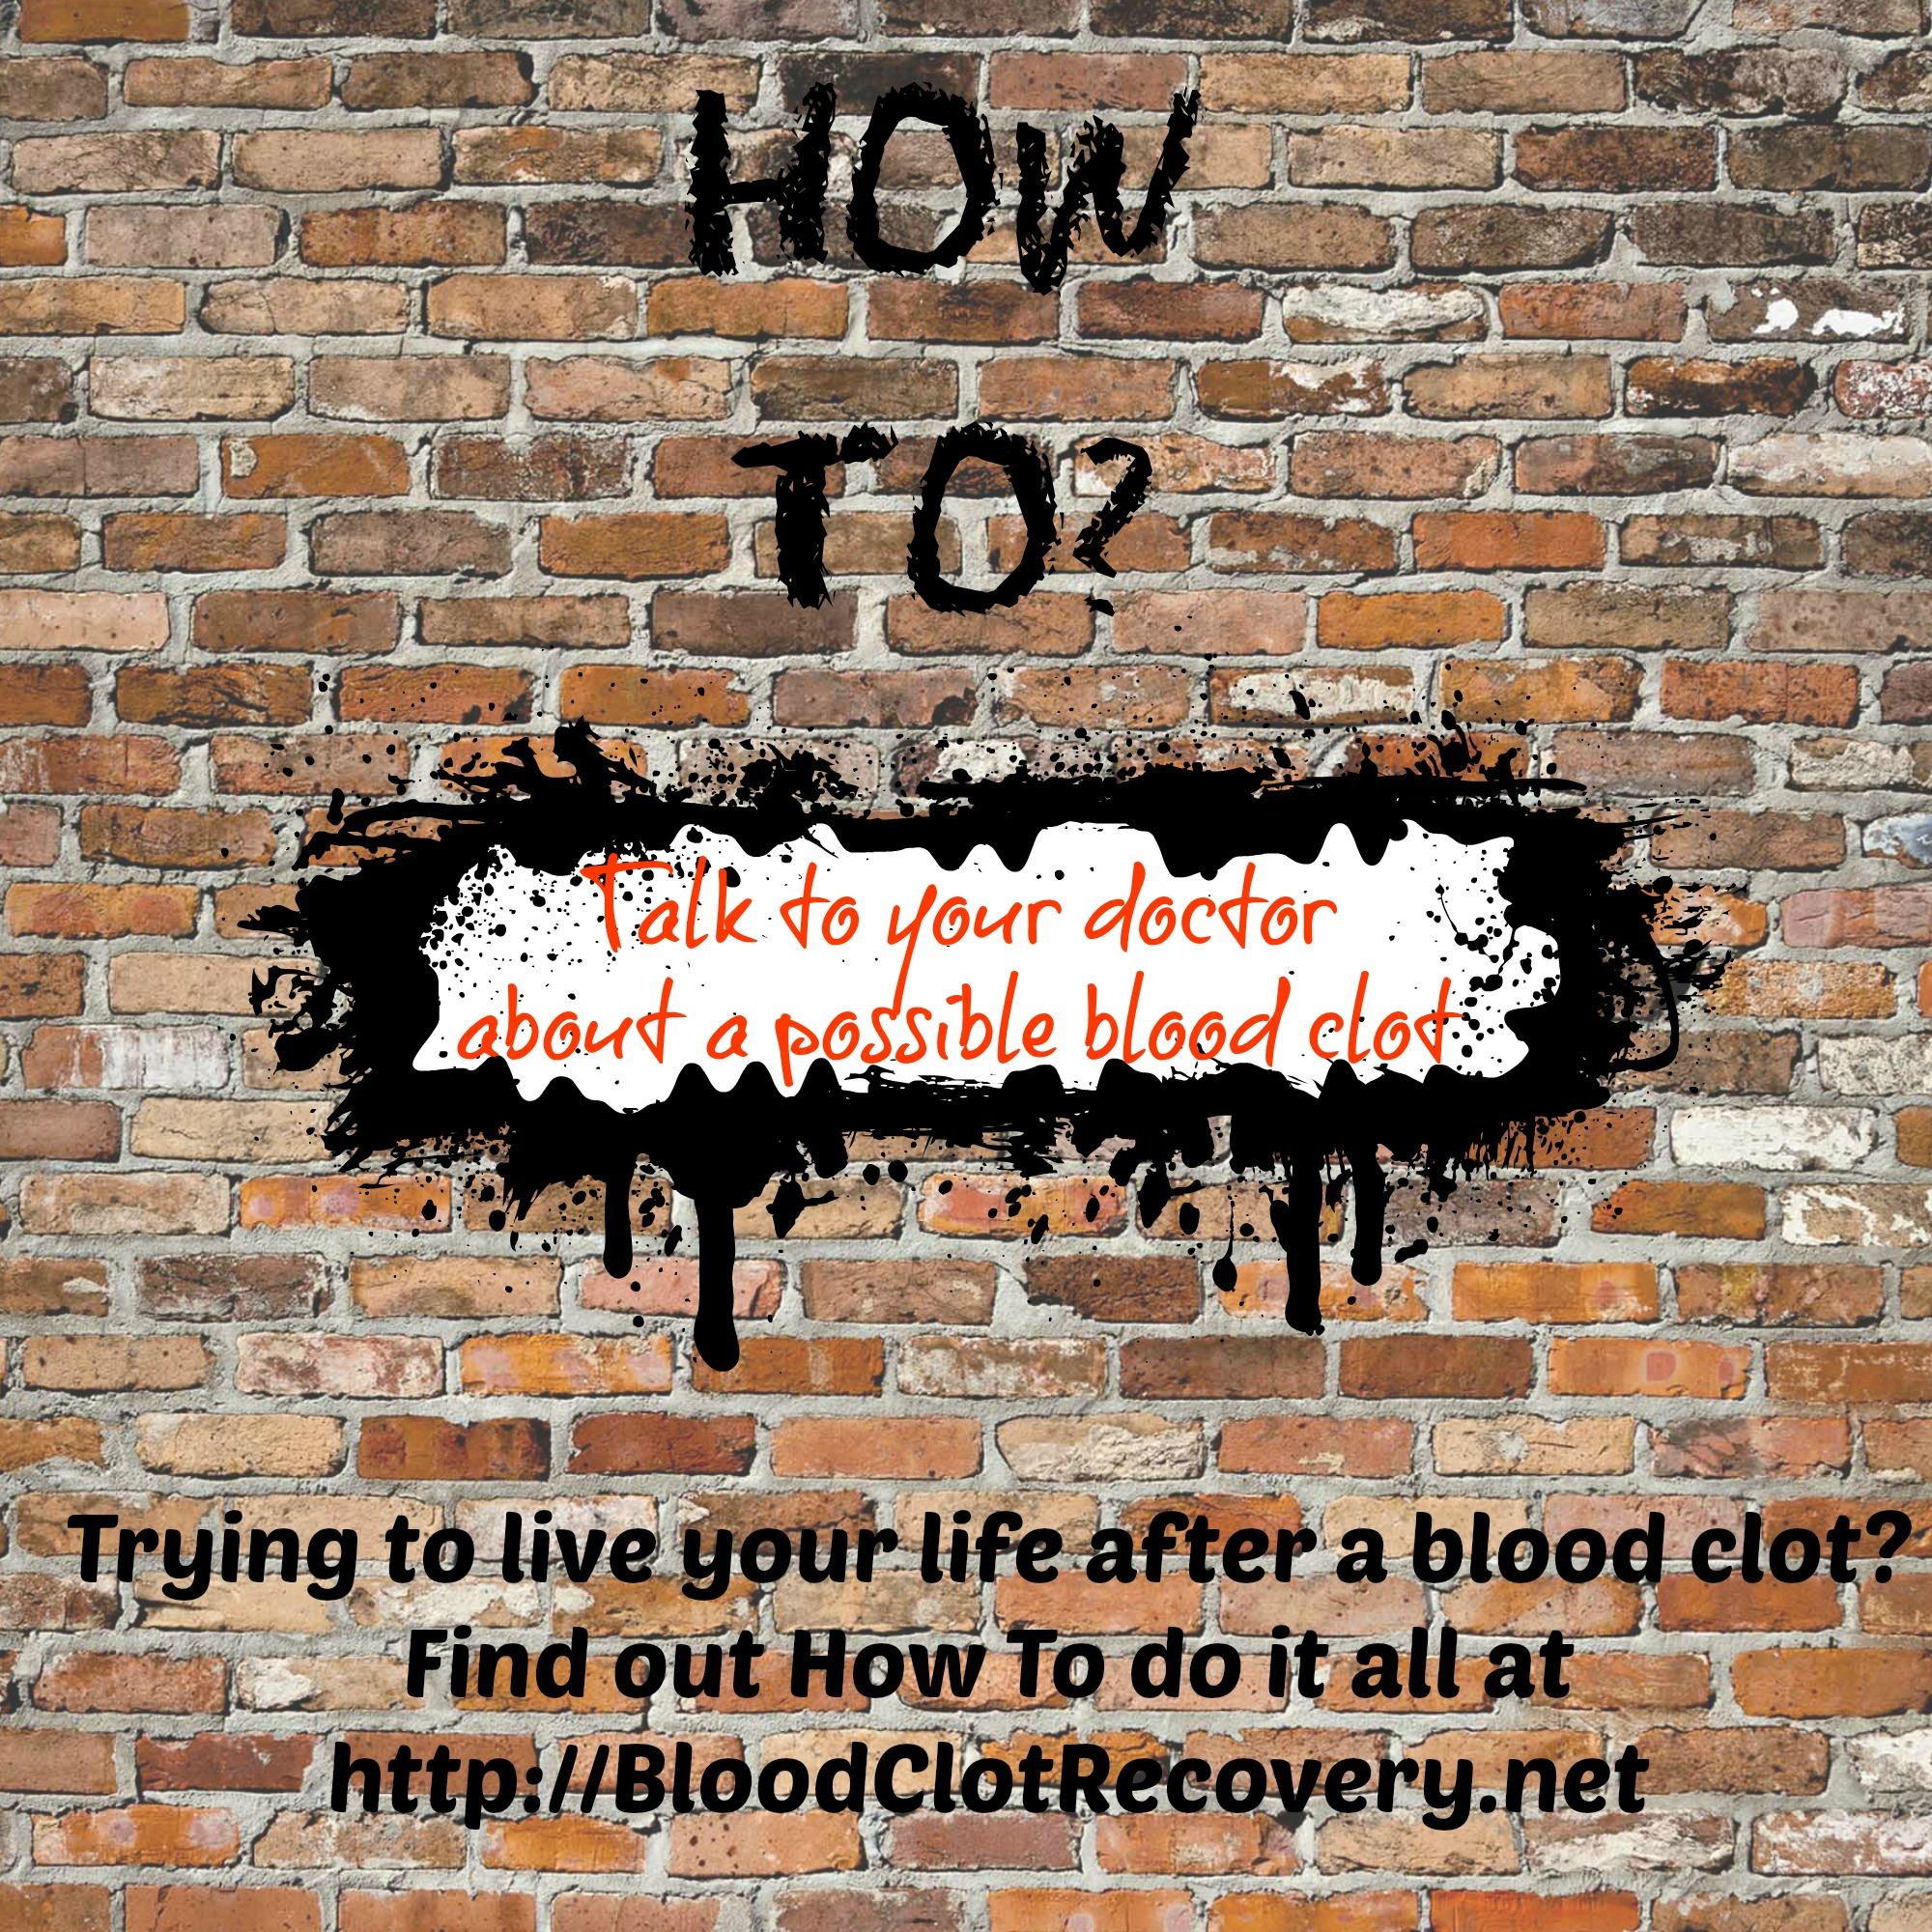 Blood clots and cancer relationship doctor answers on - How To Talk To Your Doctor About A Possible Blood Clot